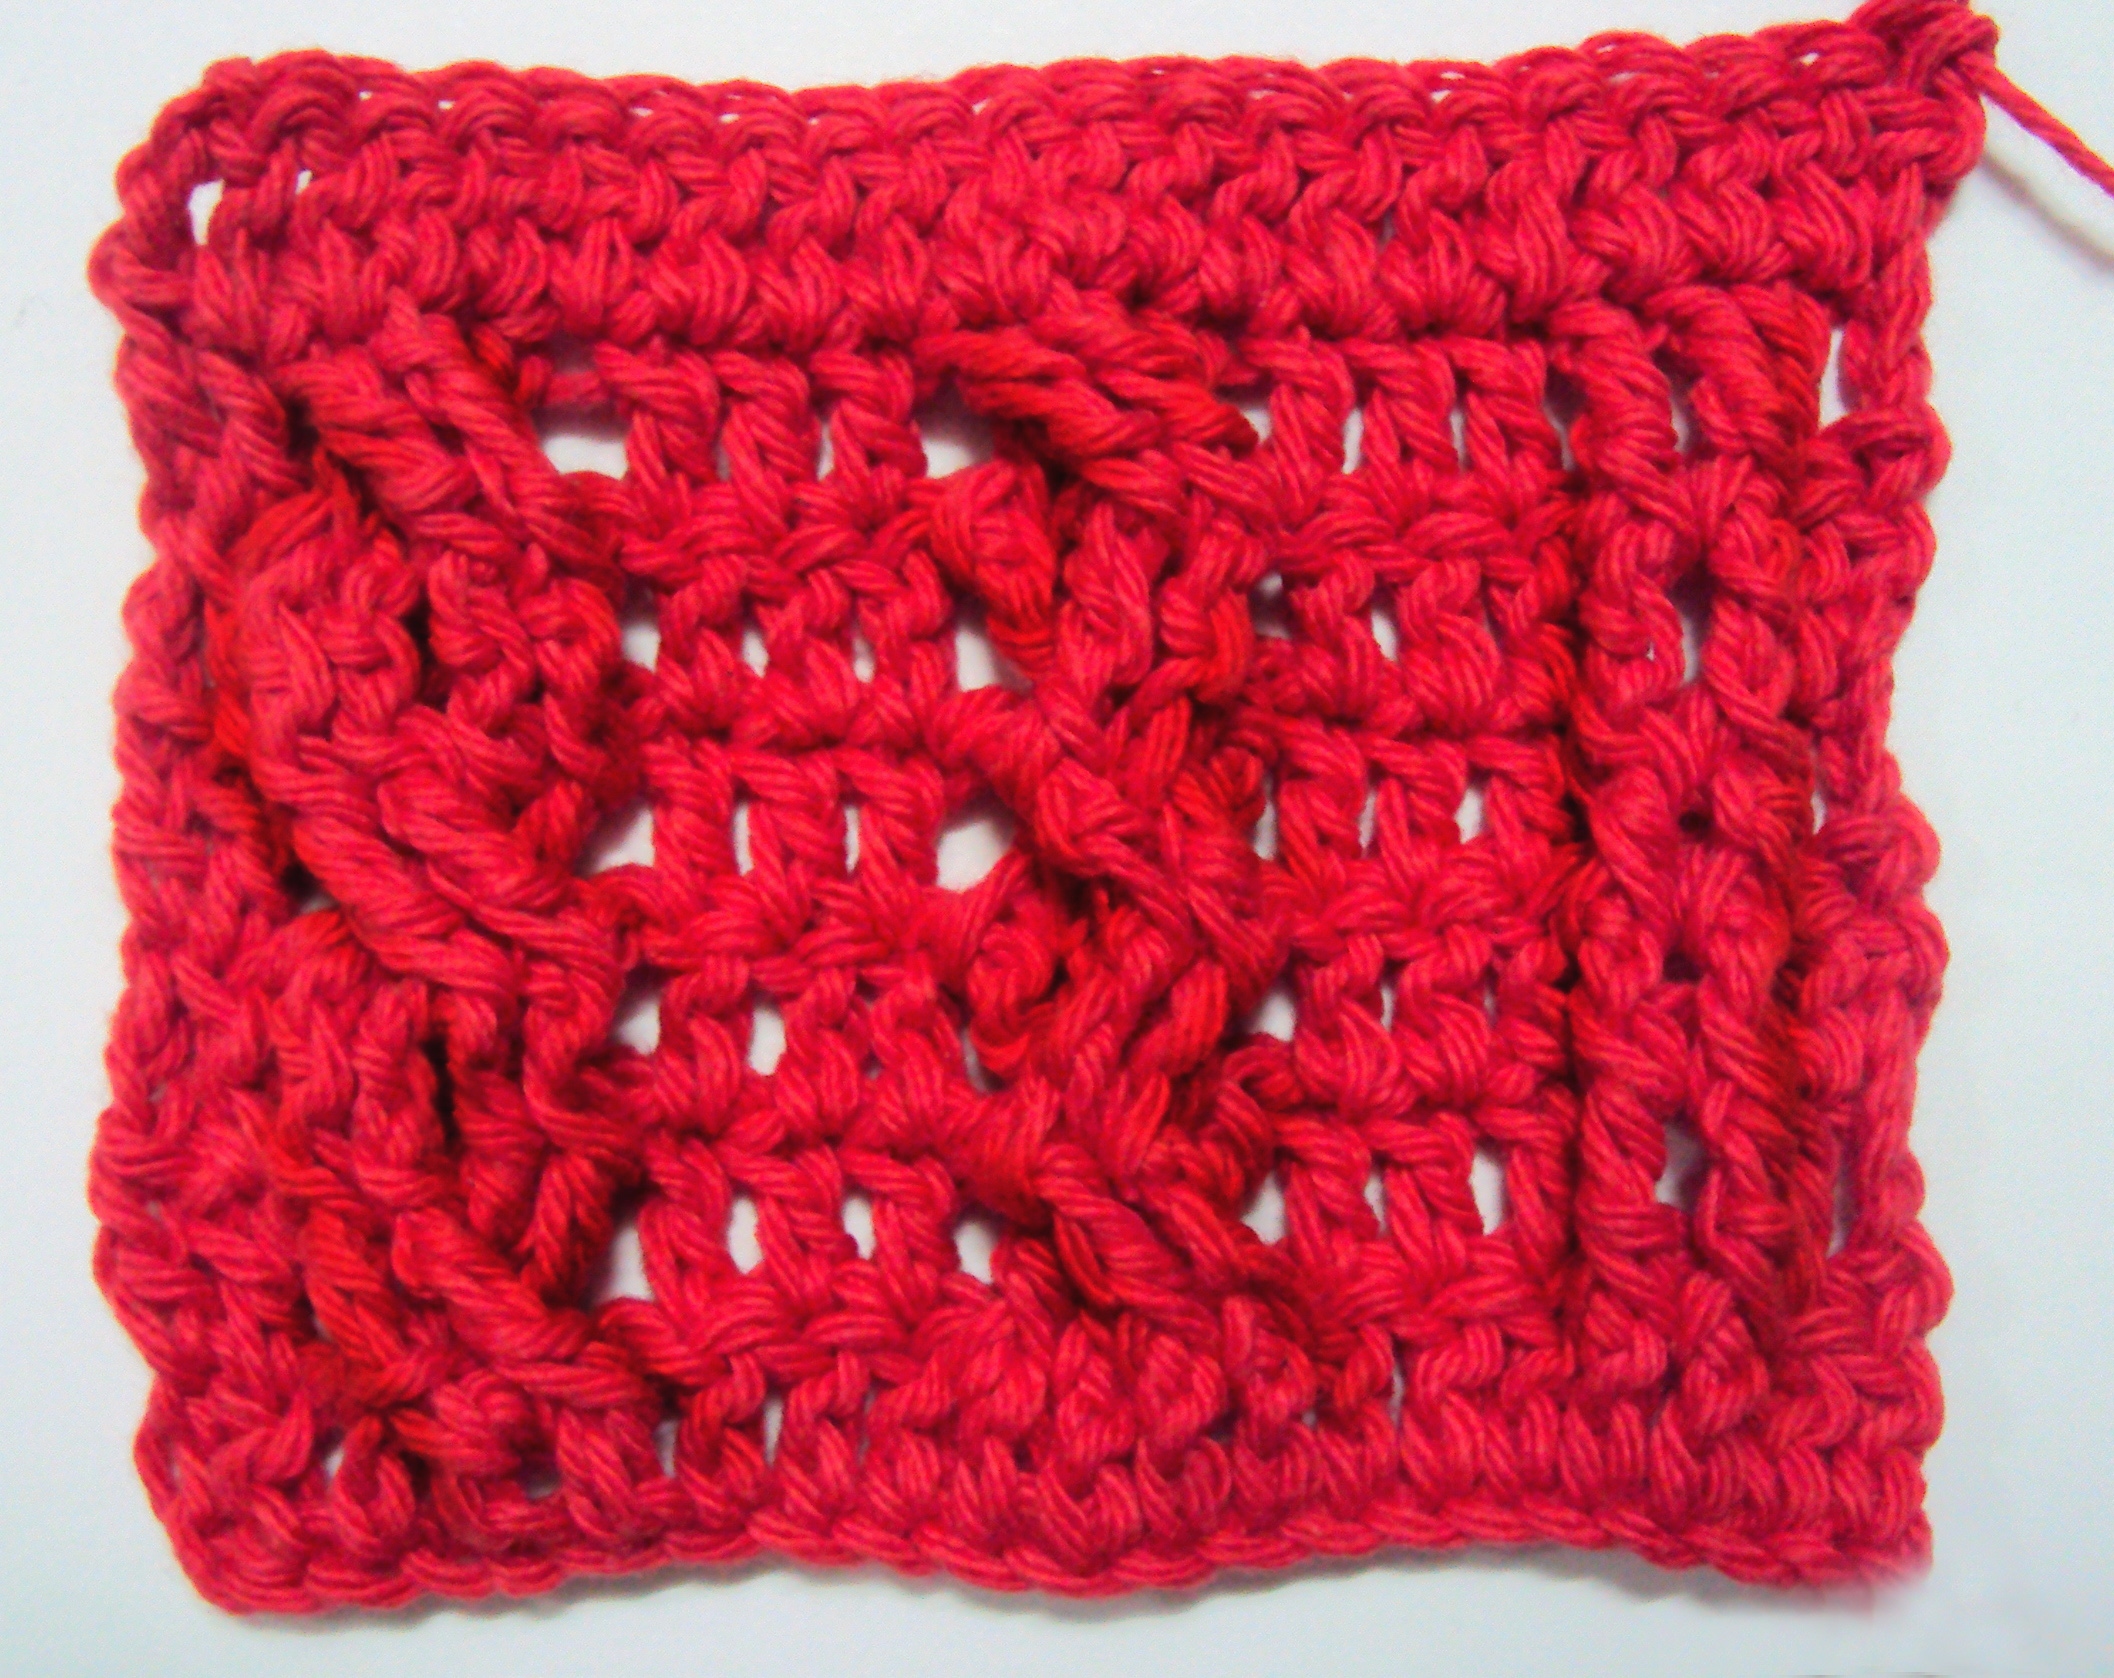 Crochet Patterns Stitches : ... How to Crochet: Cable Stitches - Crochet Patterns, Tutorials and News